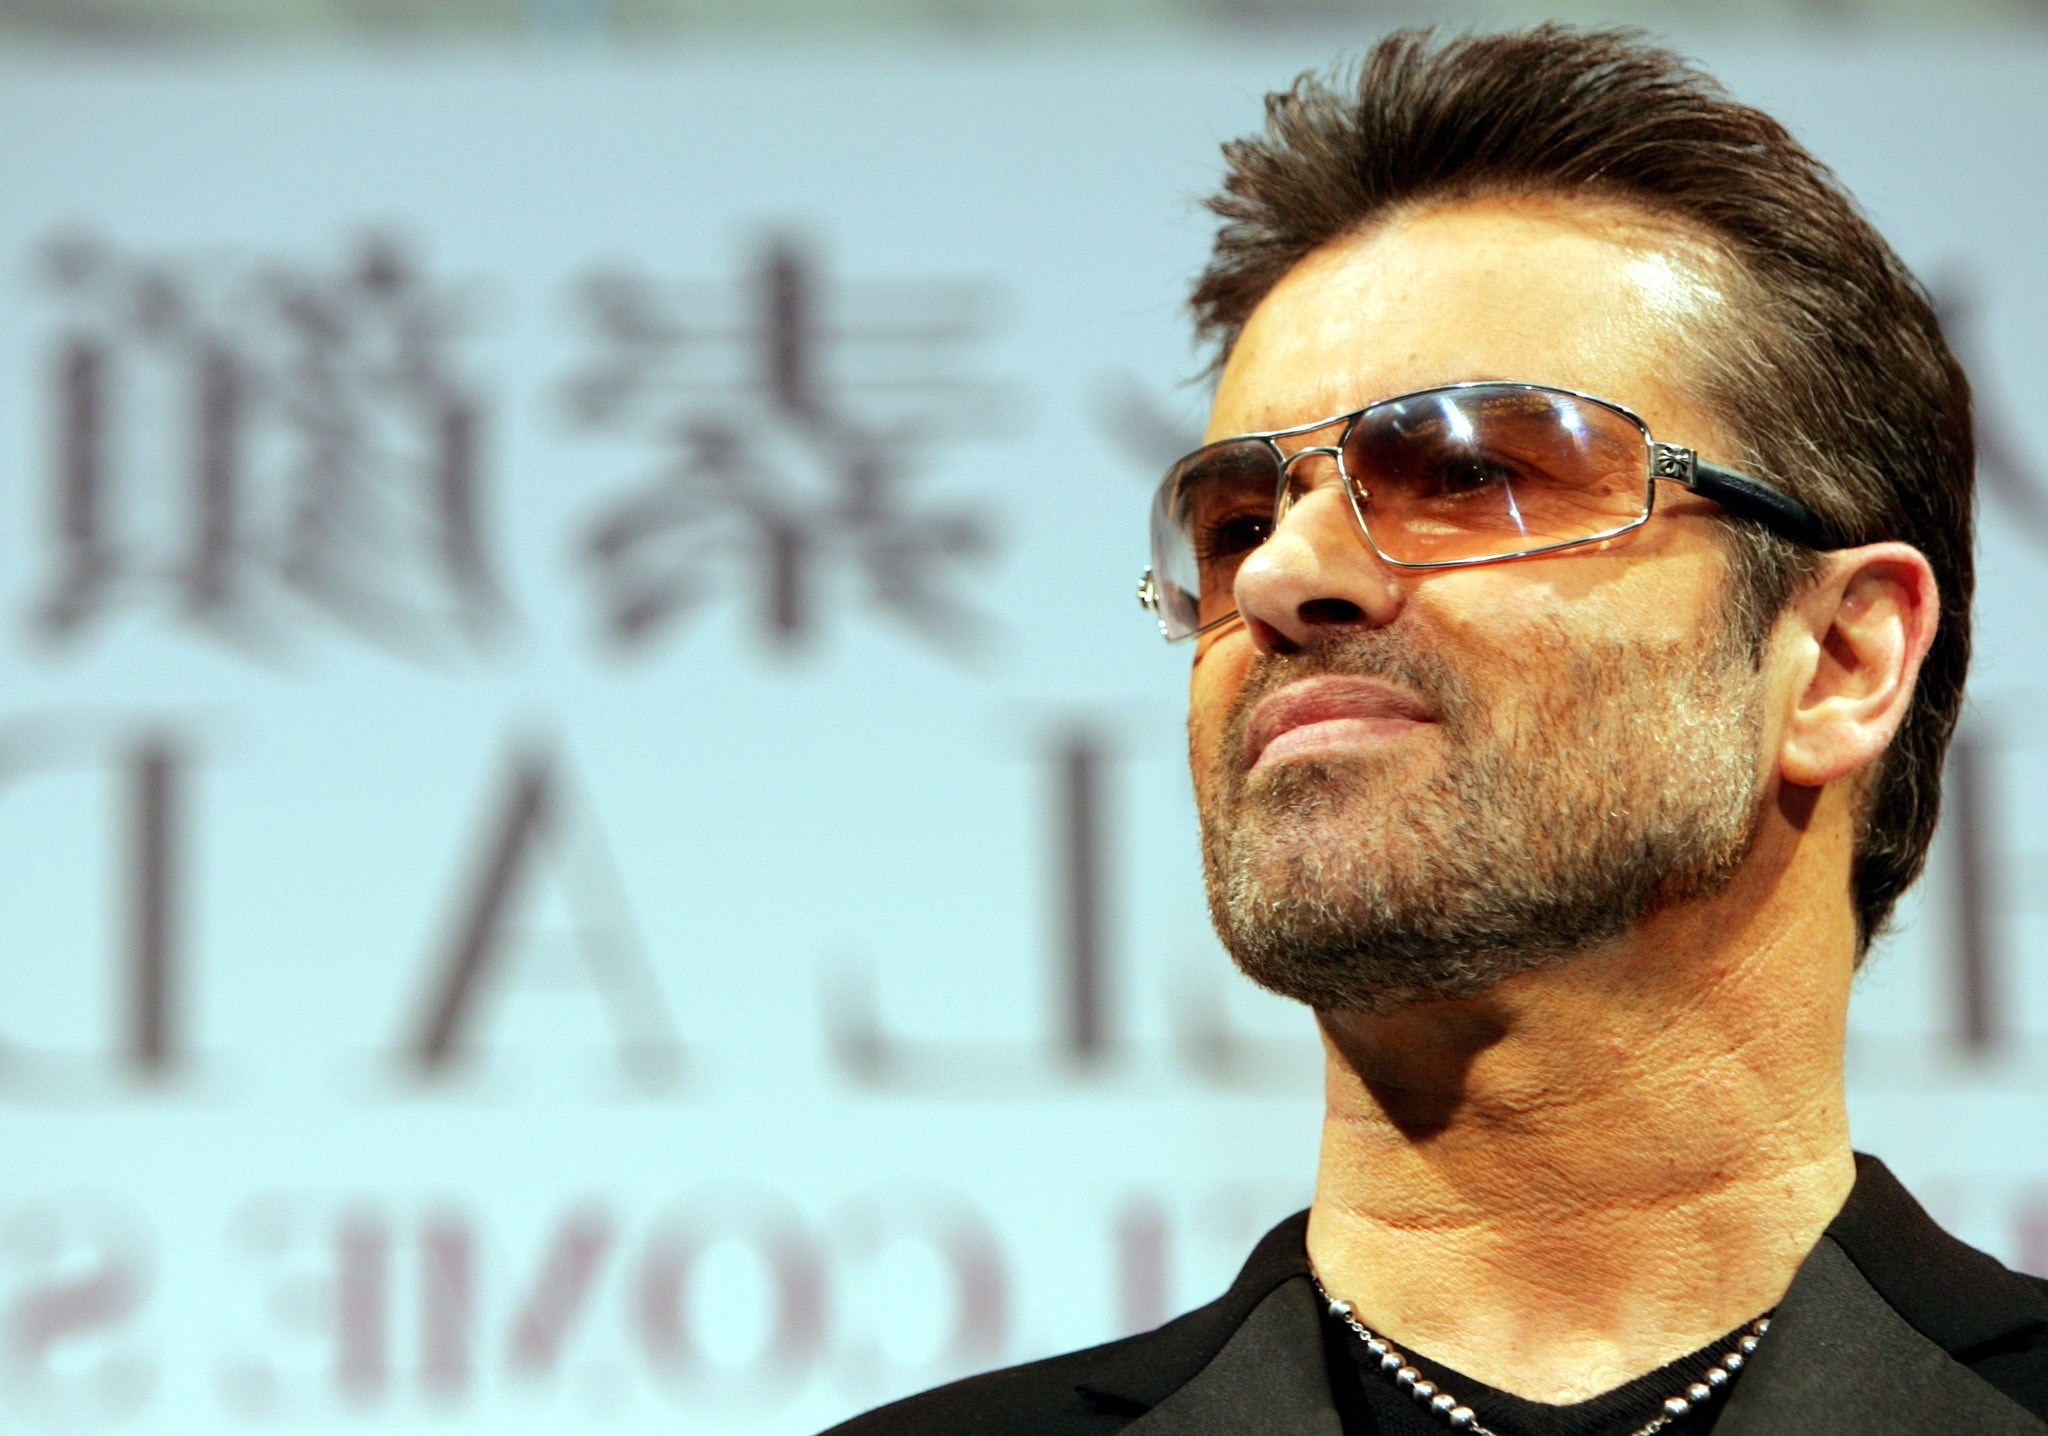 George Michael PC wallpapers